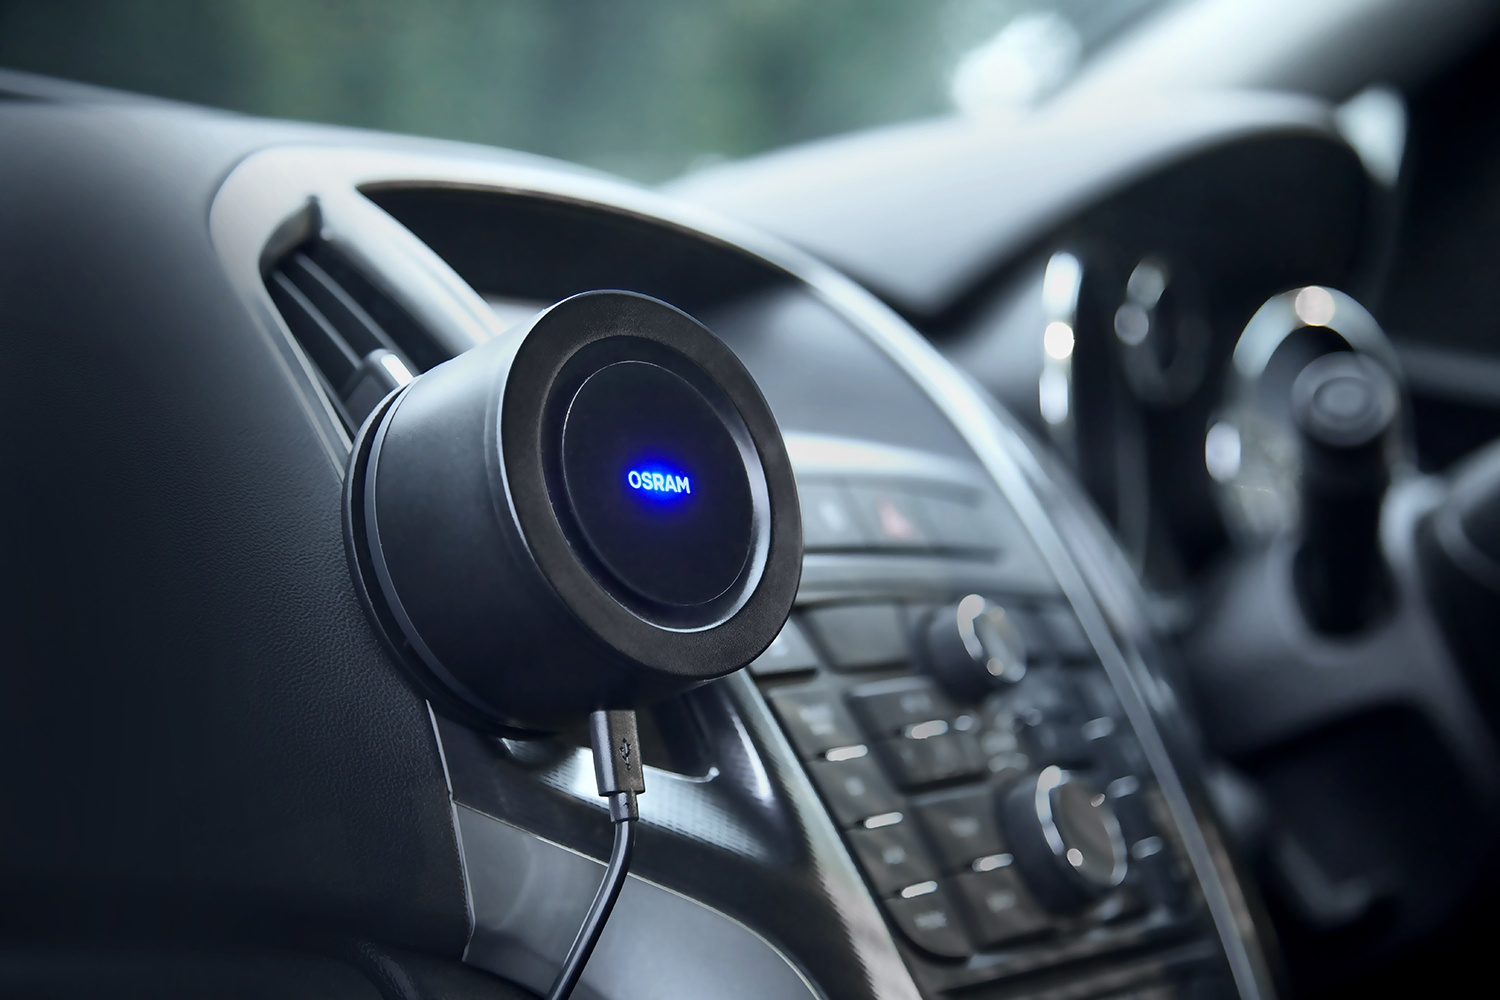 Osram's new UV light cleans the air in cars